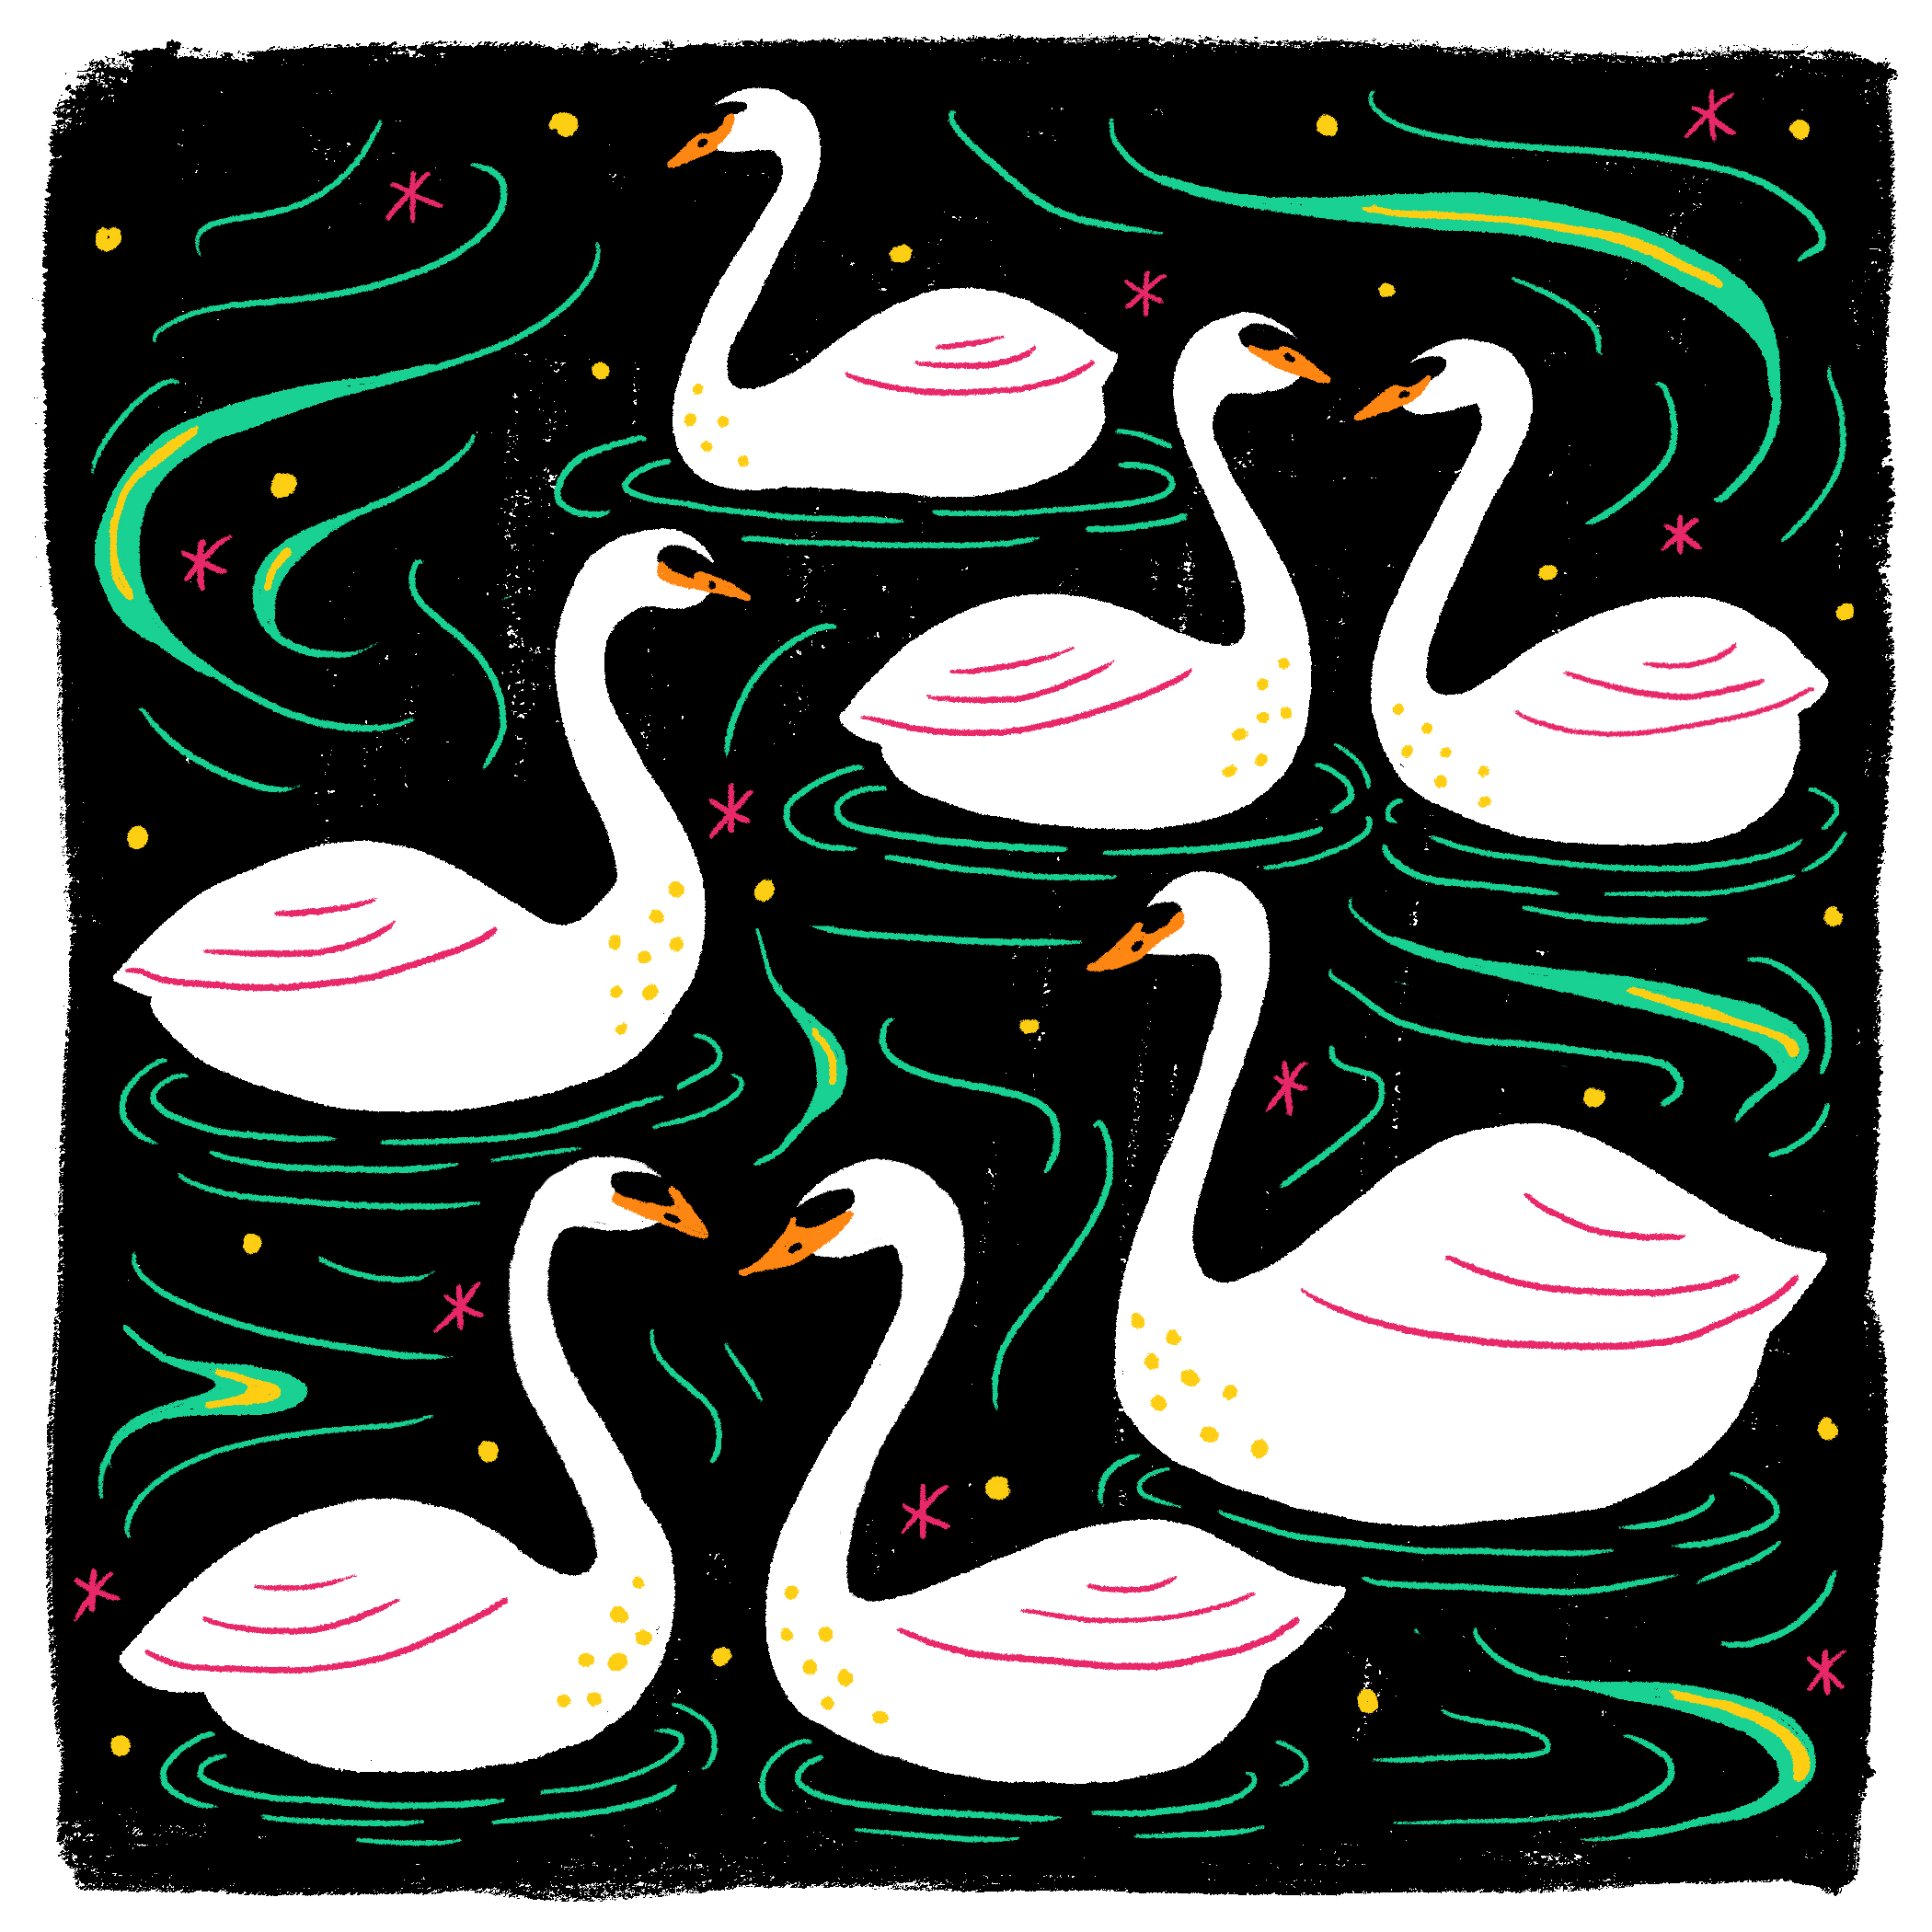 Day 7: Swans